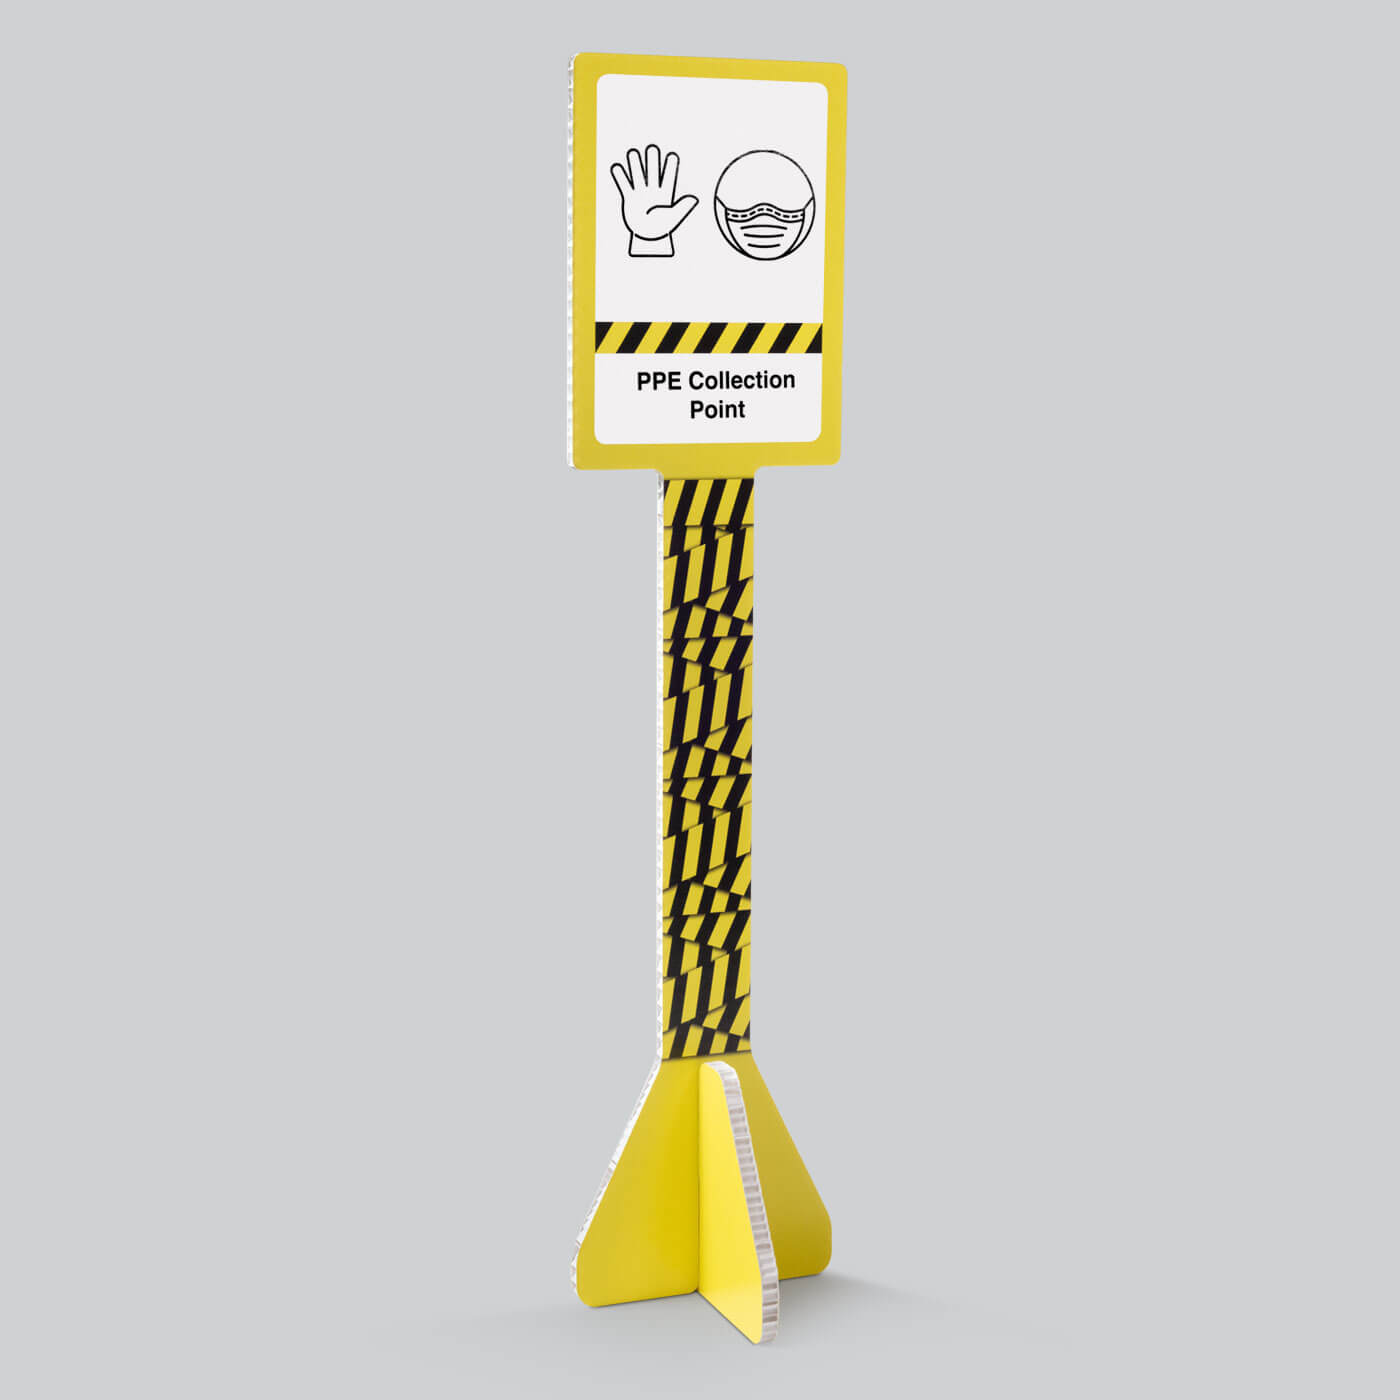 Coronavirus (Covid-19) PPE Collection Point floor standing sign by Dufaylite